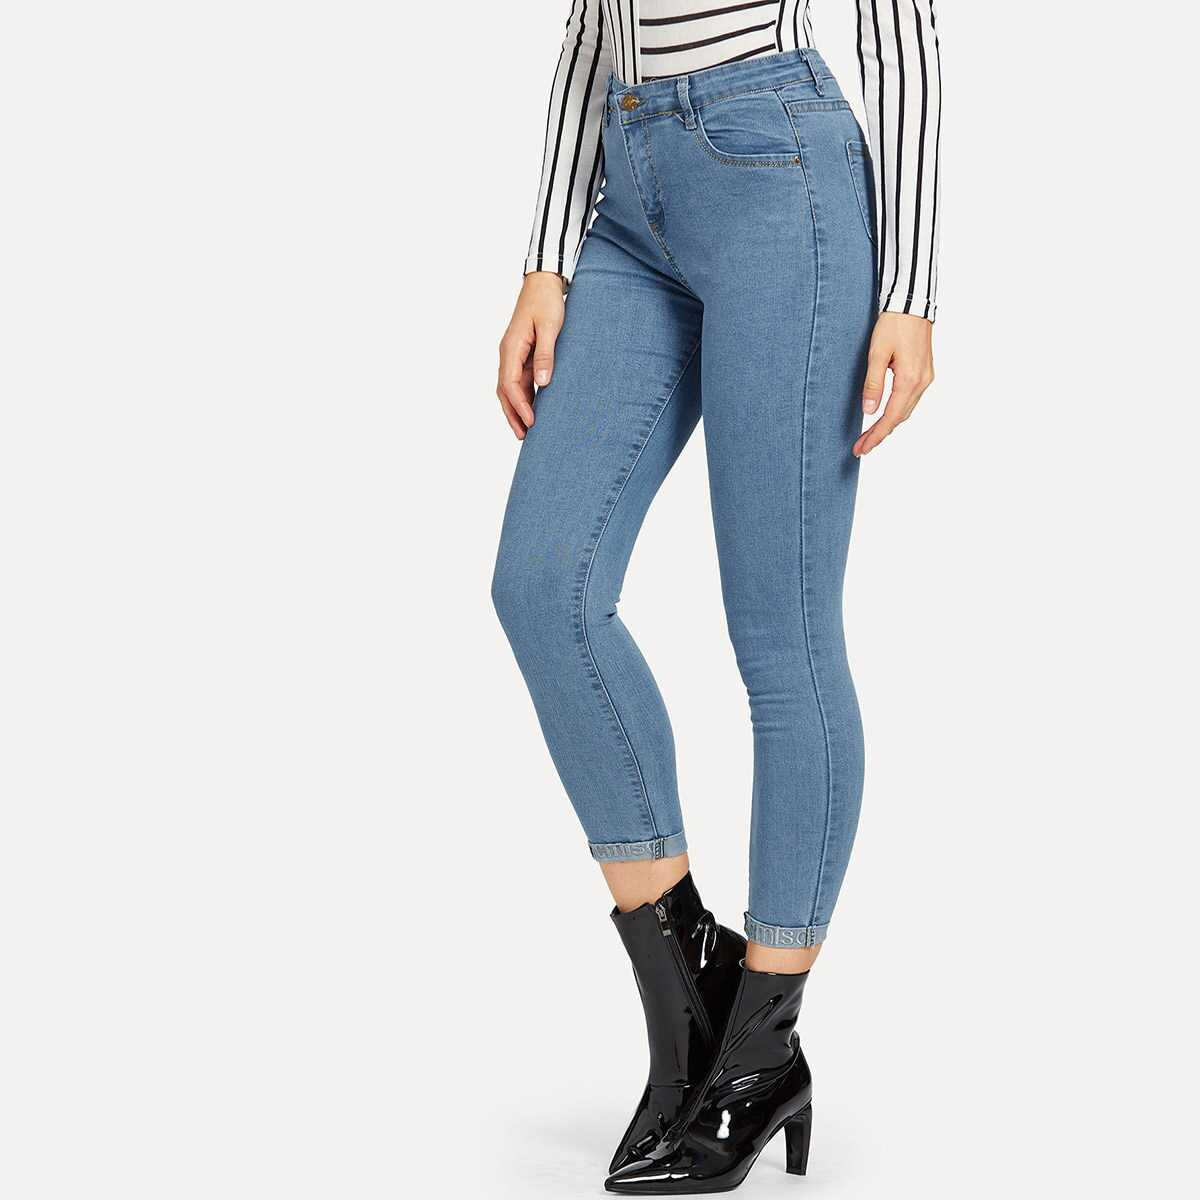 Letter Embroidered Roll Up Jeans - Shein - GOOFASH